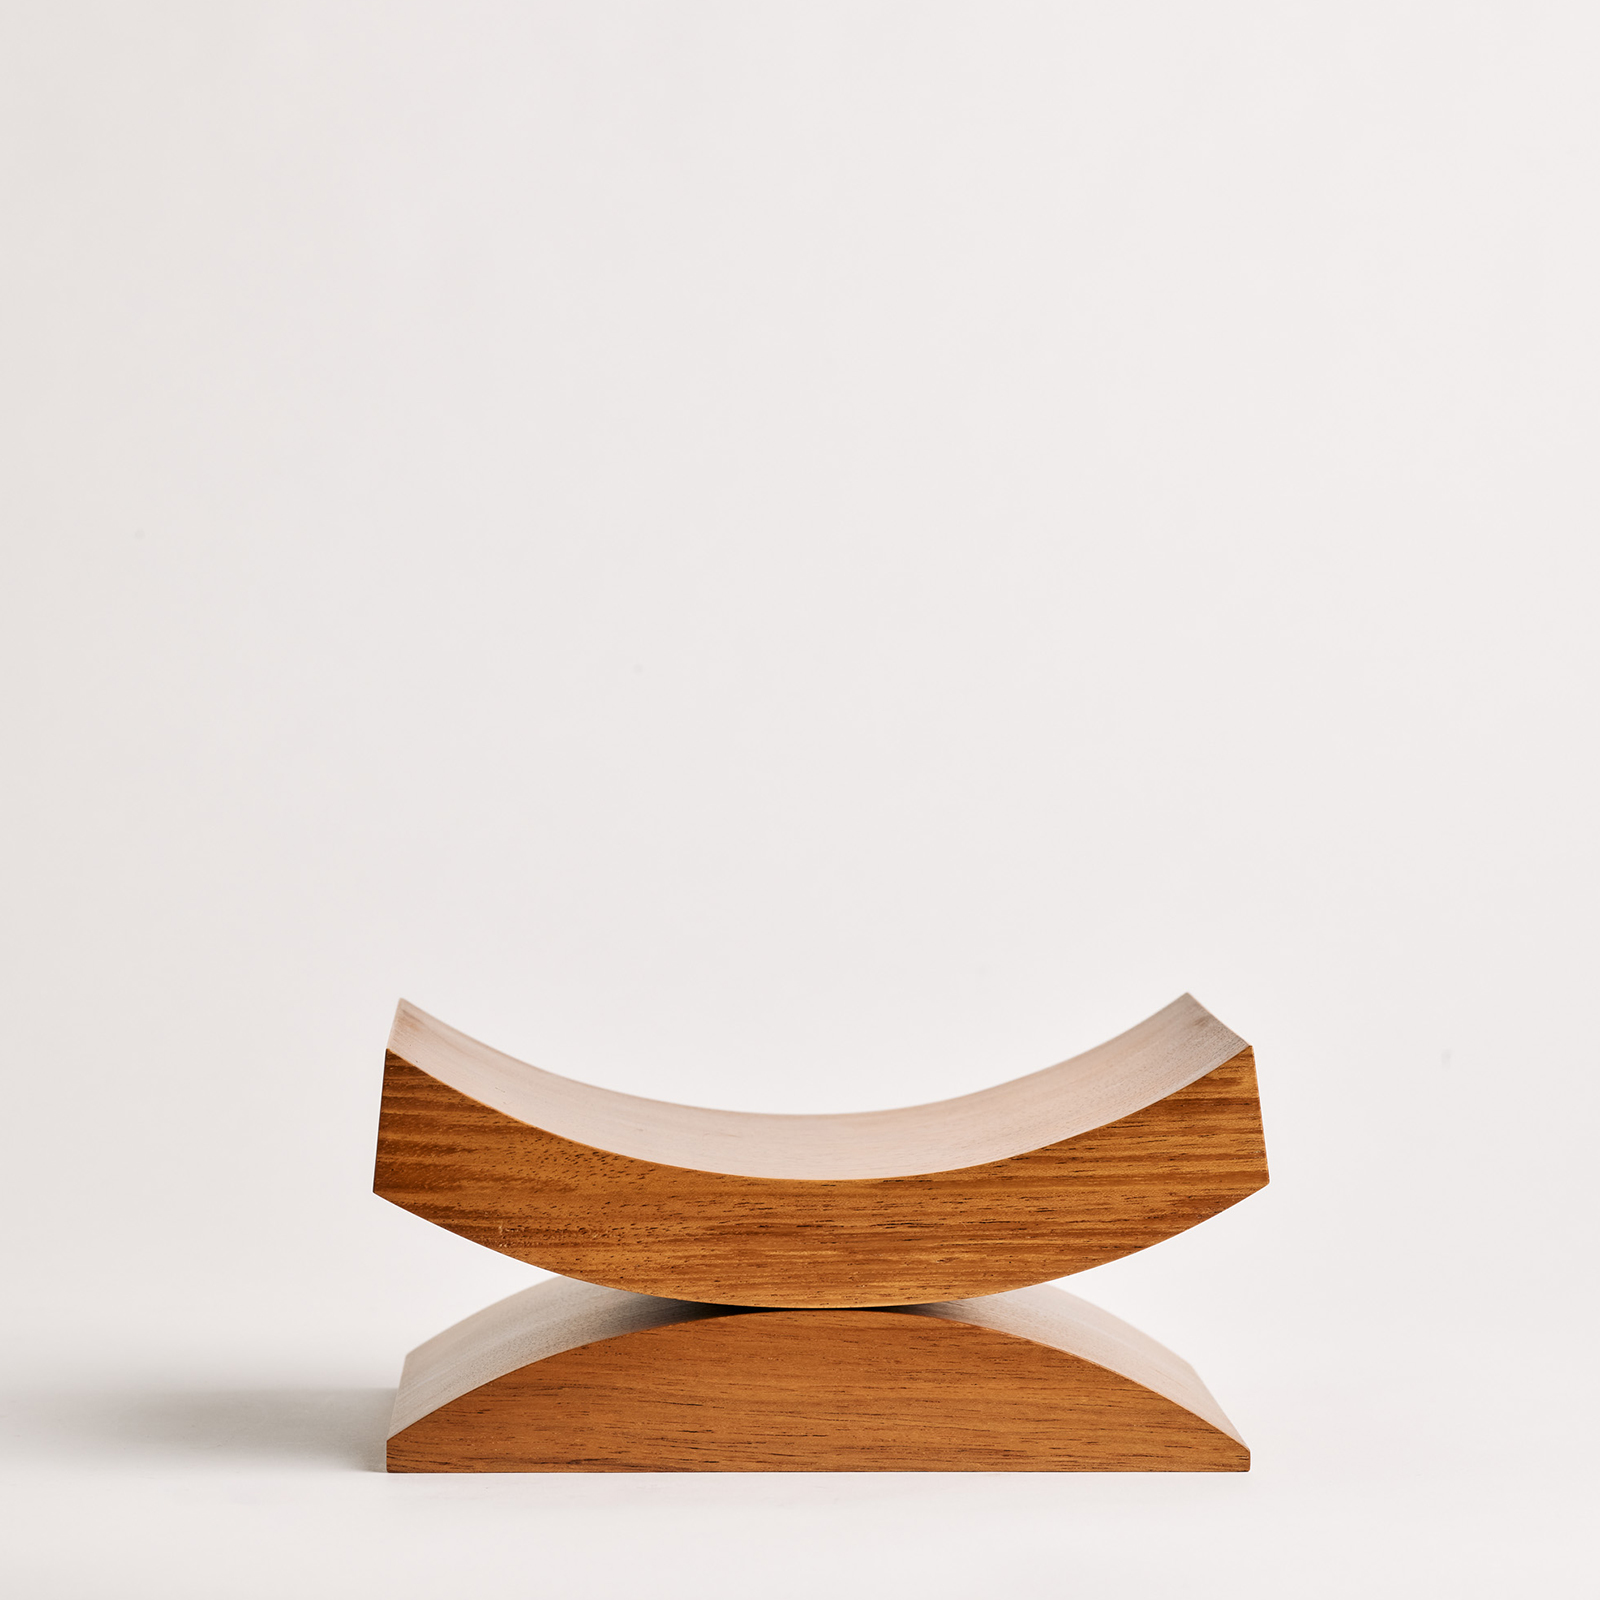 Timber Forms In Tasmanian Blackwood And Limited Edition By Zachary Frankel 2